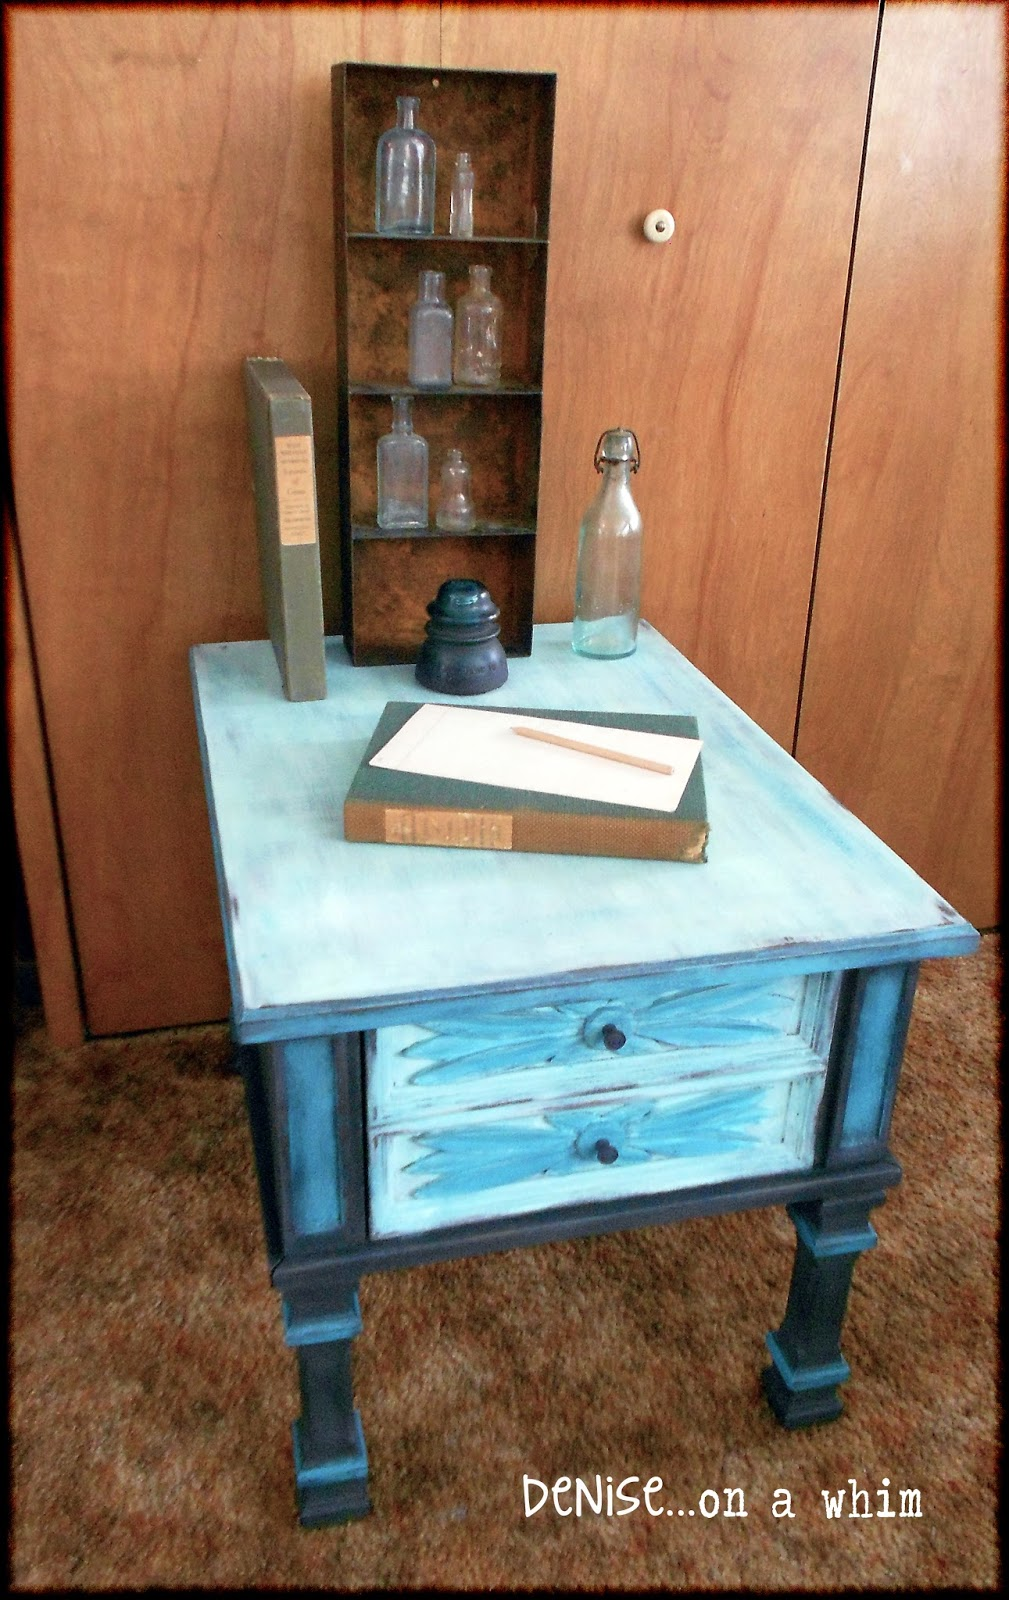 Adding paint can transform something you hate into something you love via http://deniseonawhim.blogspot.com